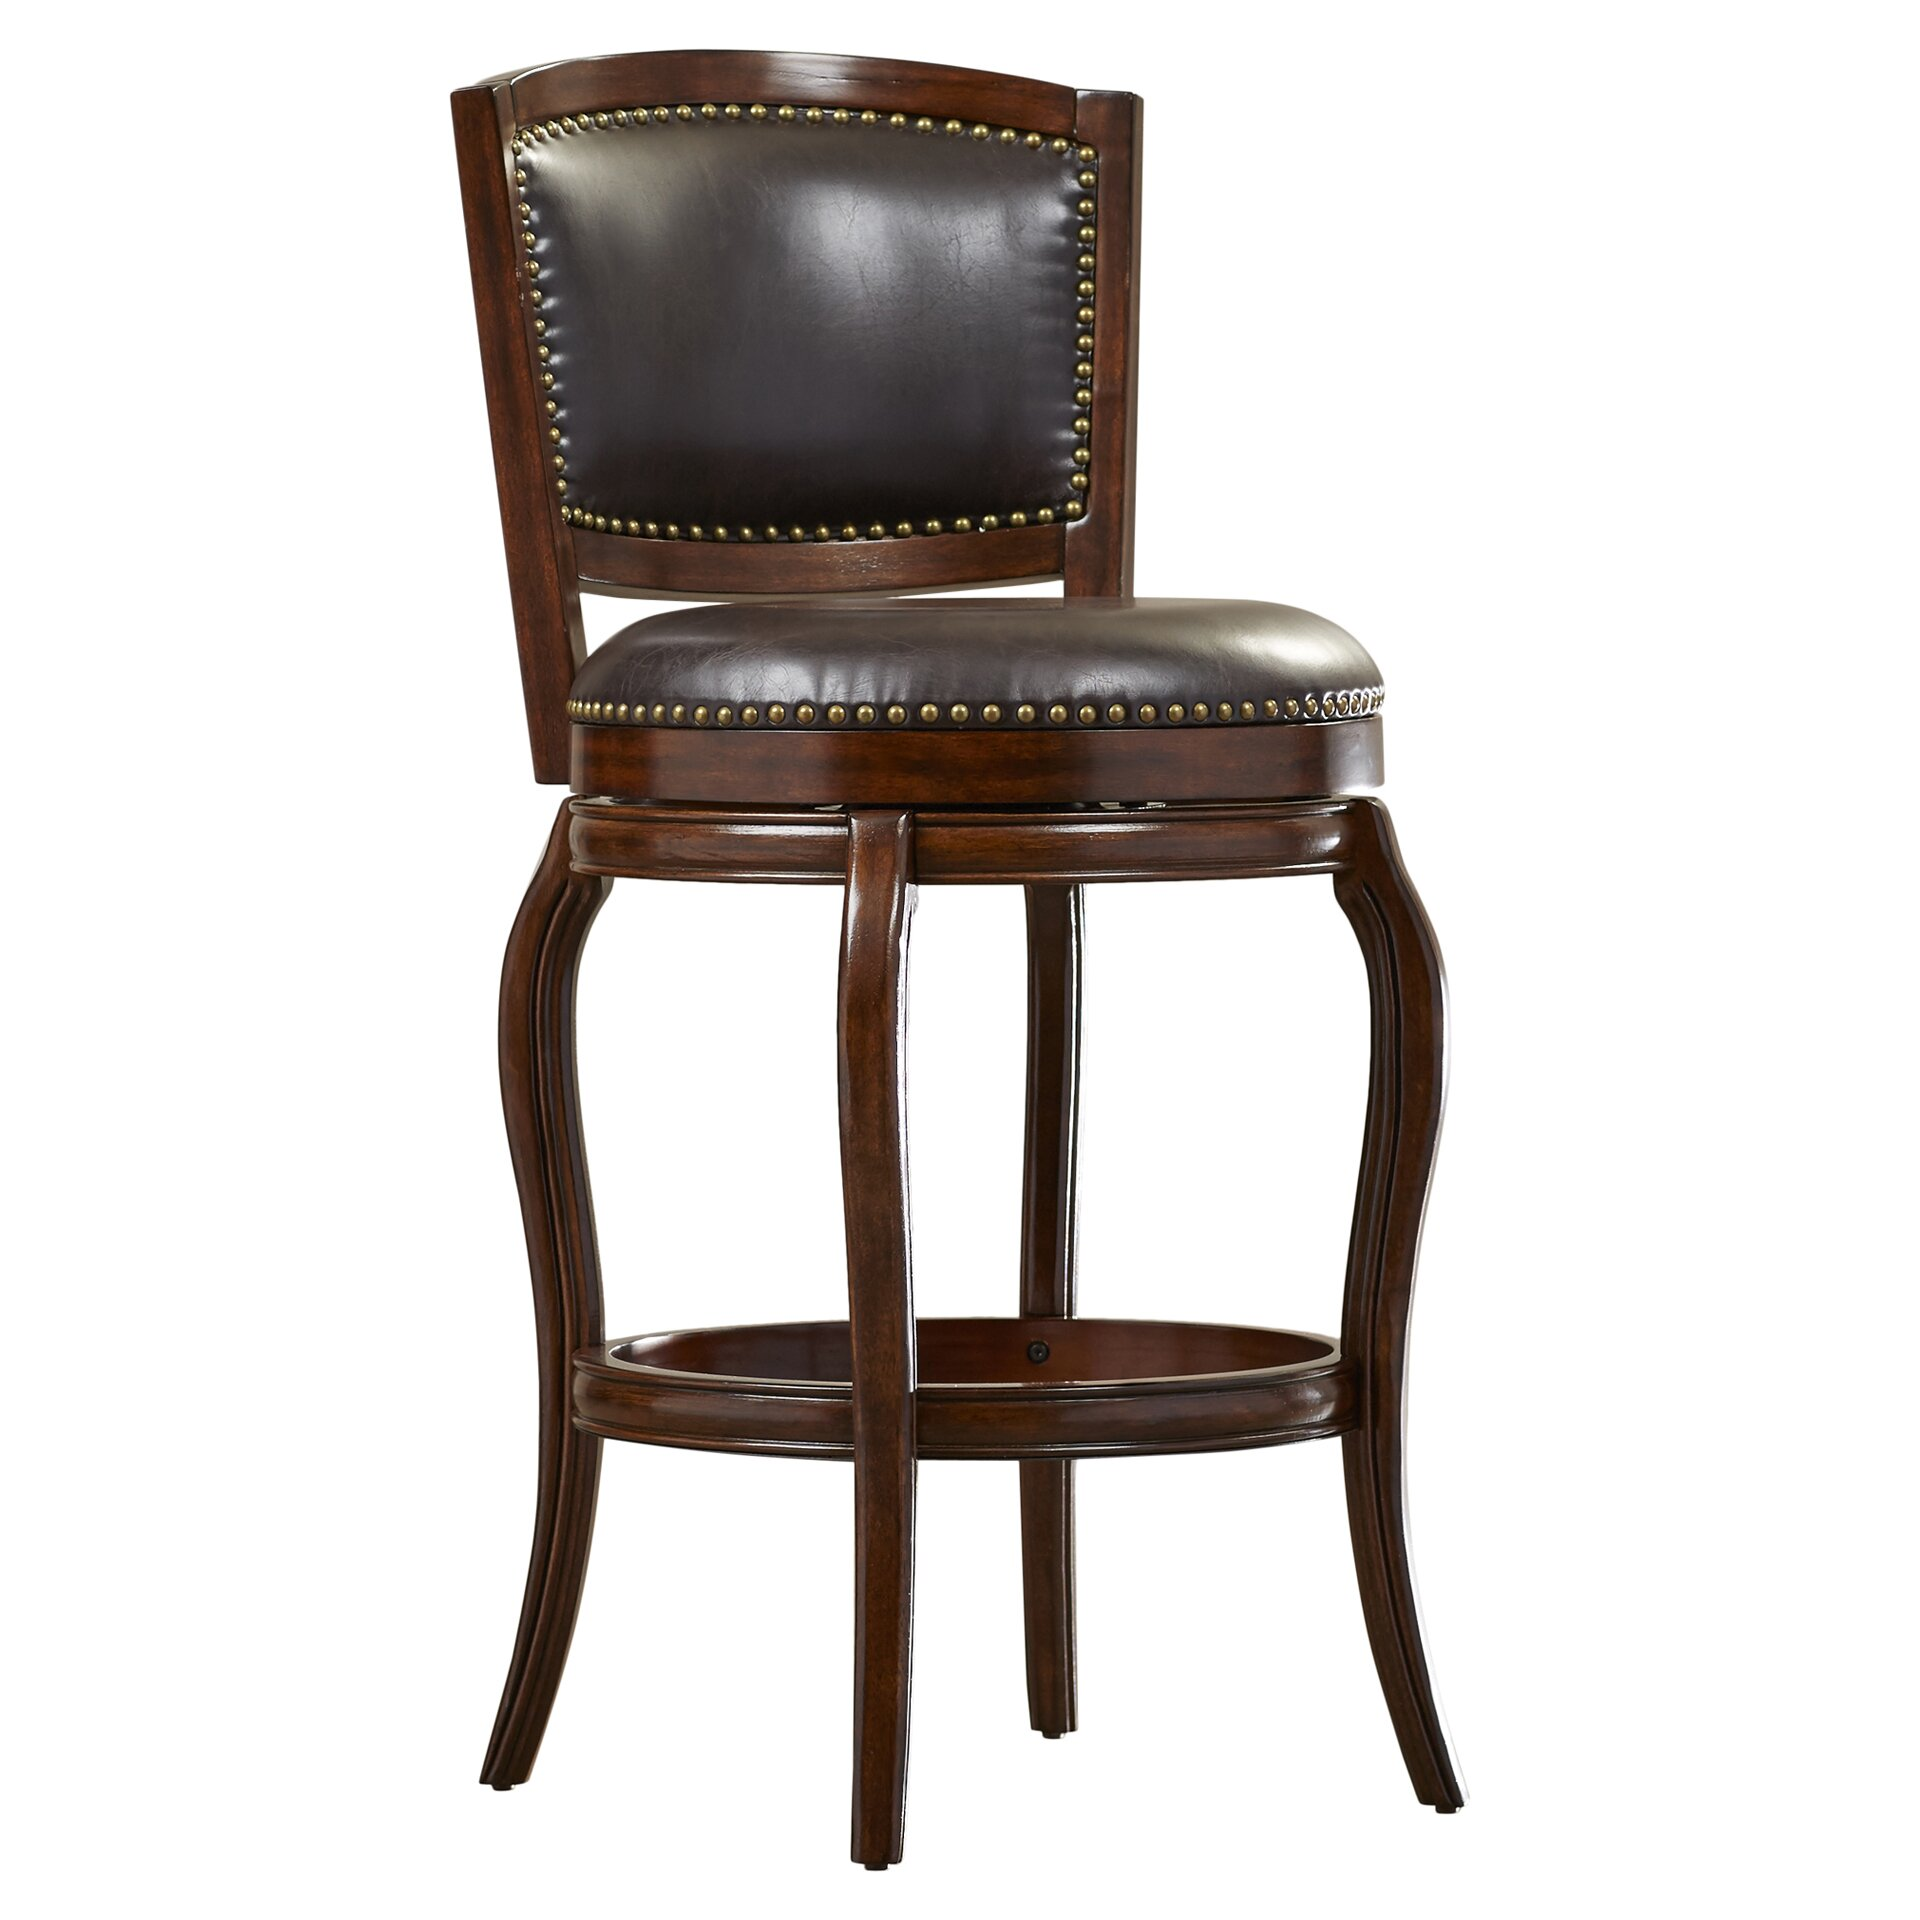 Darby Home Co Rockton 29quot Swivel Bar Stool with Cushion  : Darby Home Co Rockton 29 Swivel Bar Stool with Cushion from www.wayfair.com size 1920 x 1920 jpeg 190kB